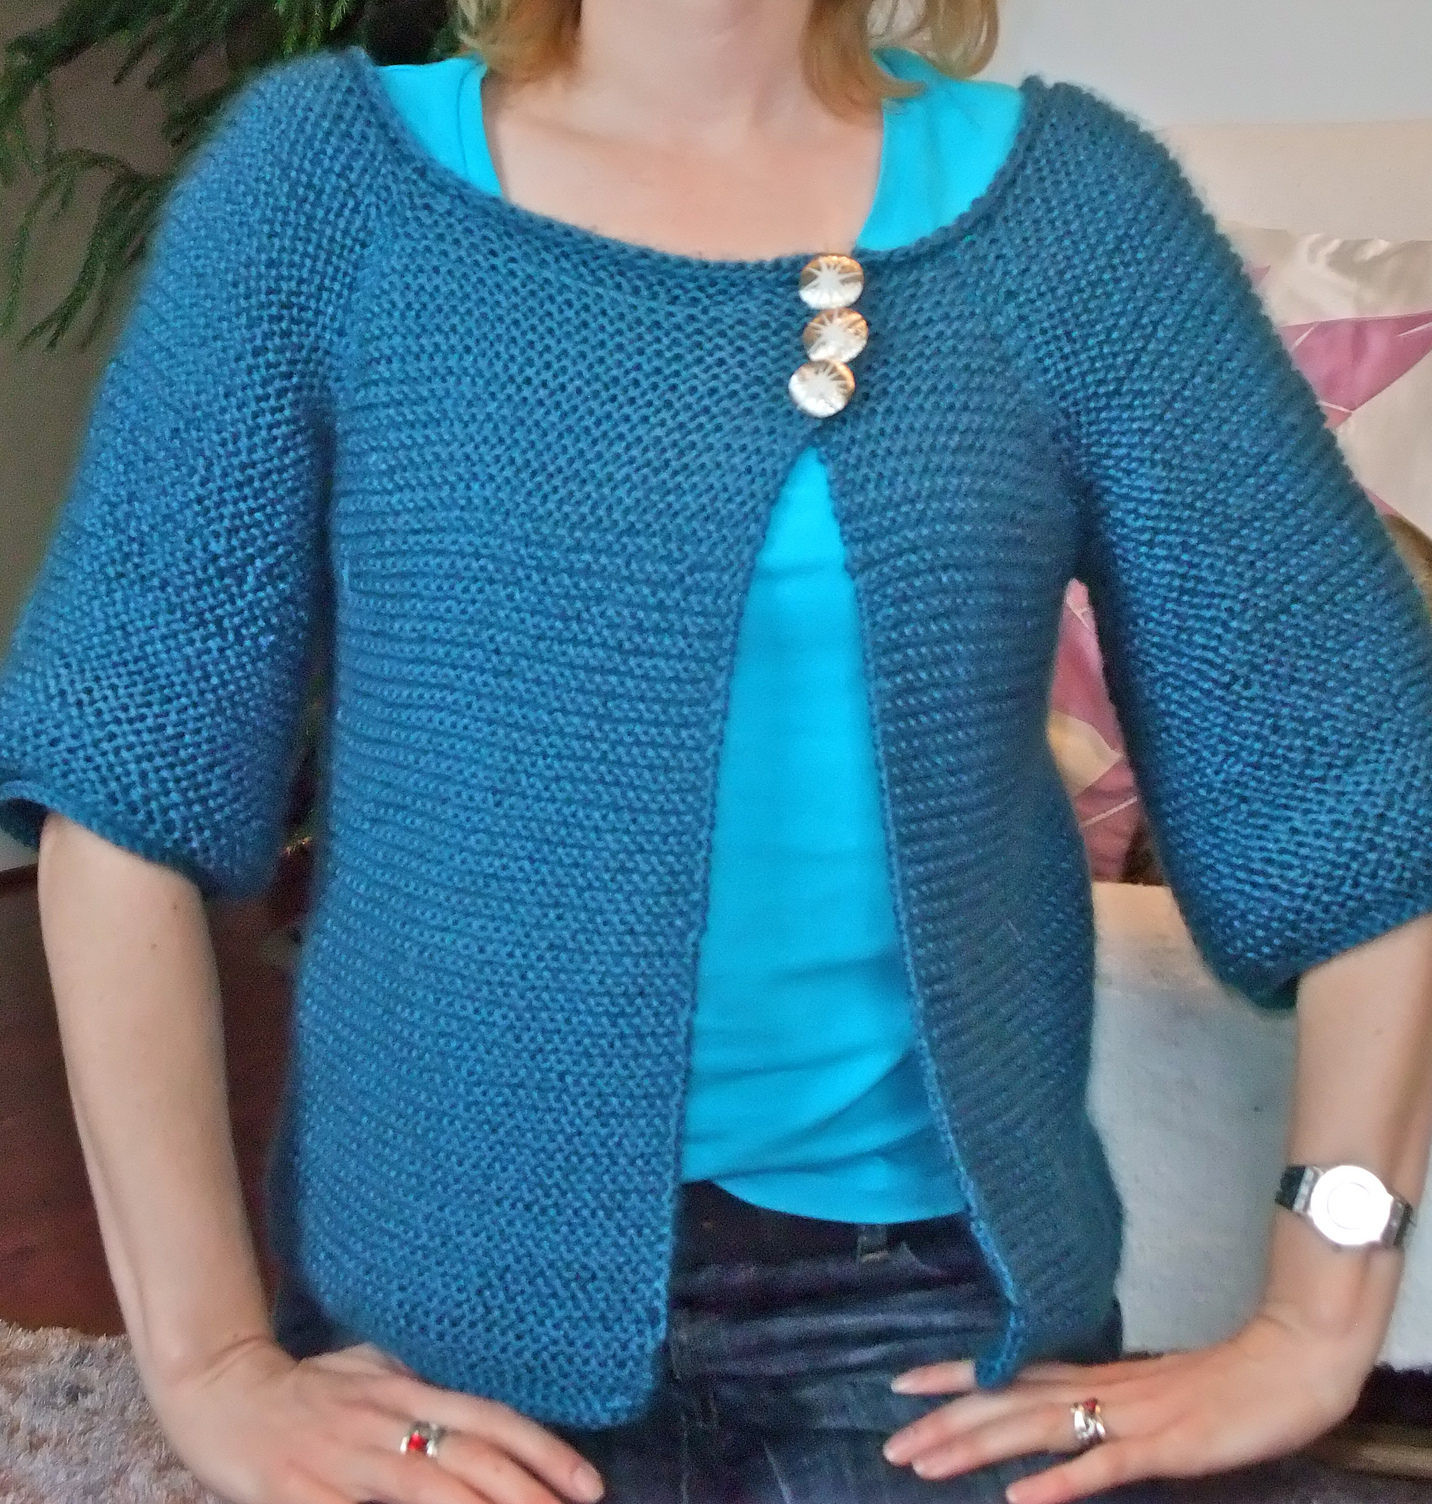 Best Of Easy Sweater Knitting Patterns Easy Knit Sweater Of Brilliant 50 Images Easy Knit Sweater